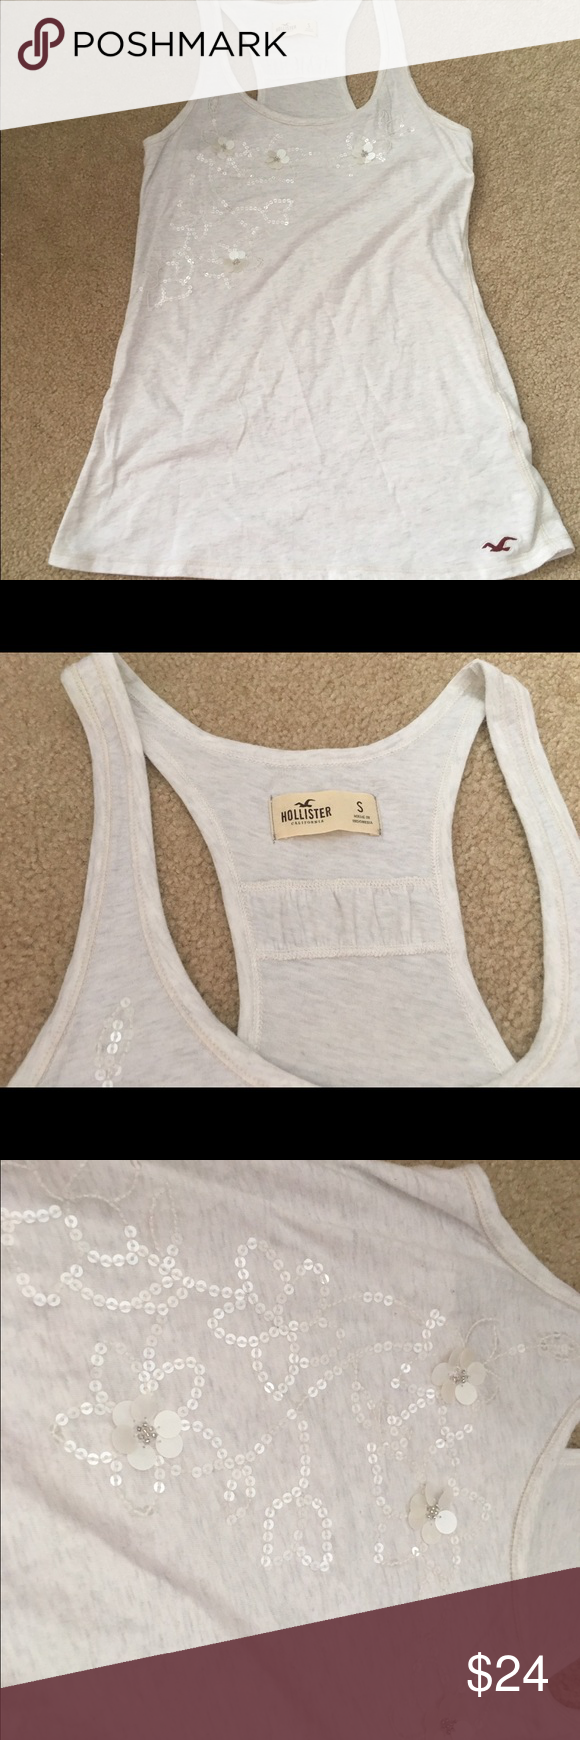 Hollister Sequin floral tank top - new! Brand new! Size small - very cute!! Color- cream/off white Hollister Tops Tank Tops